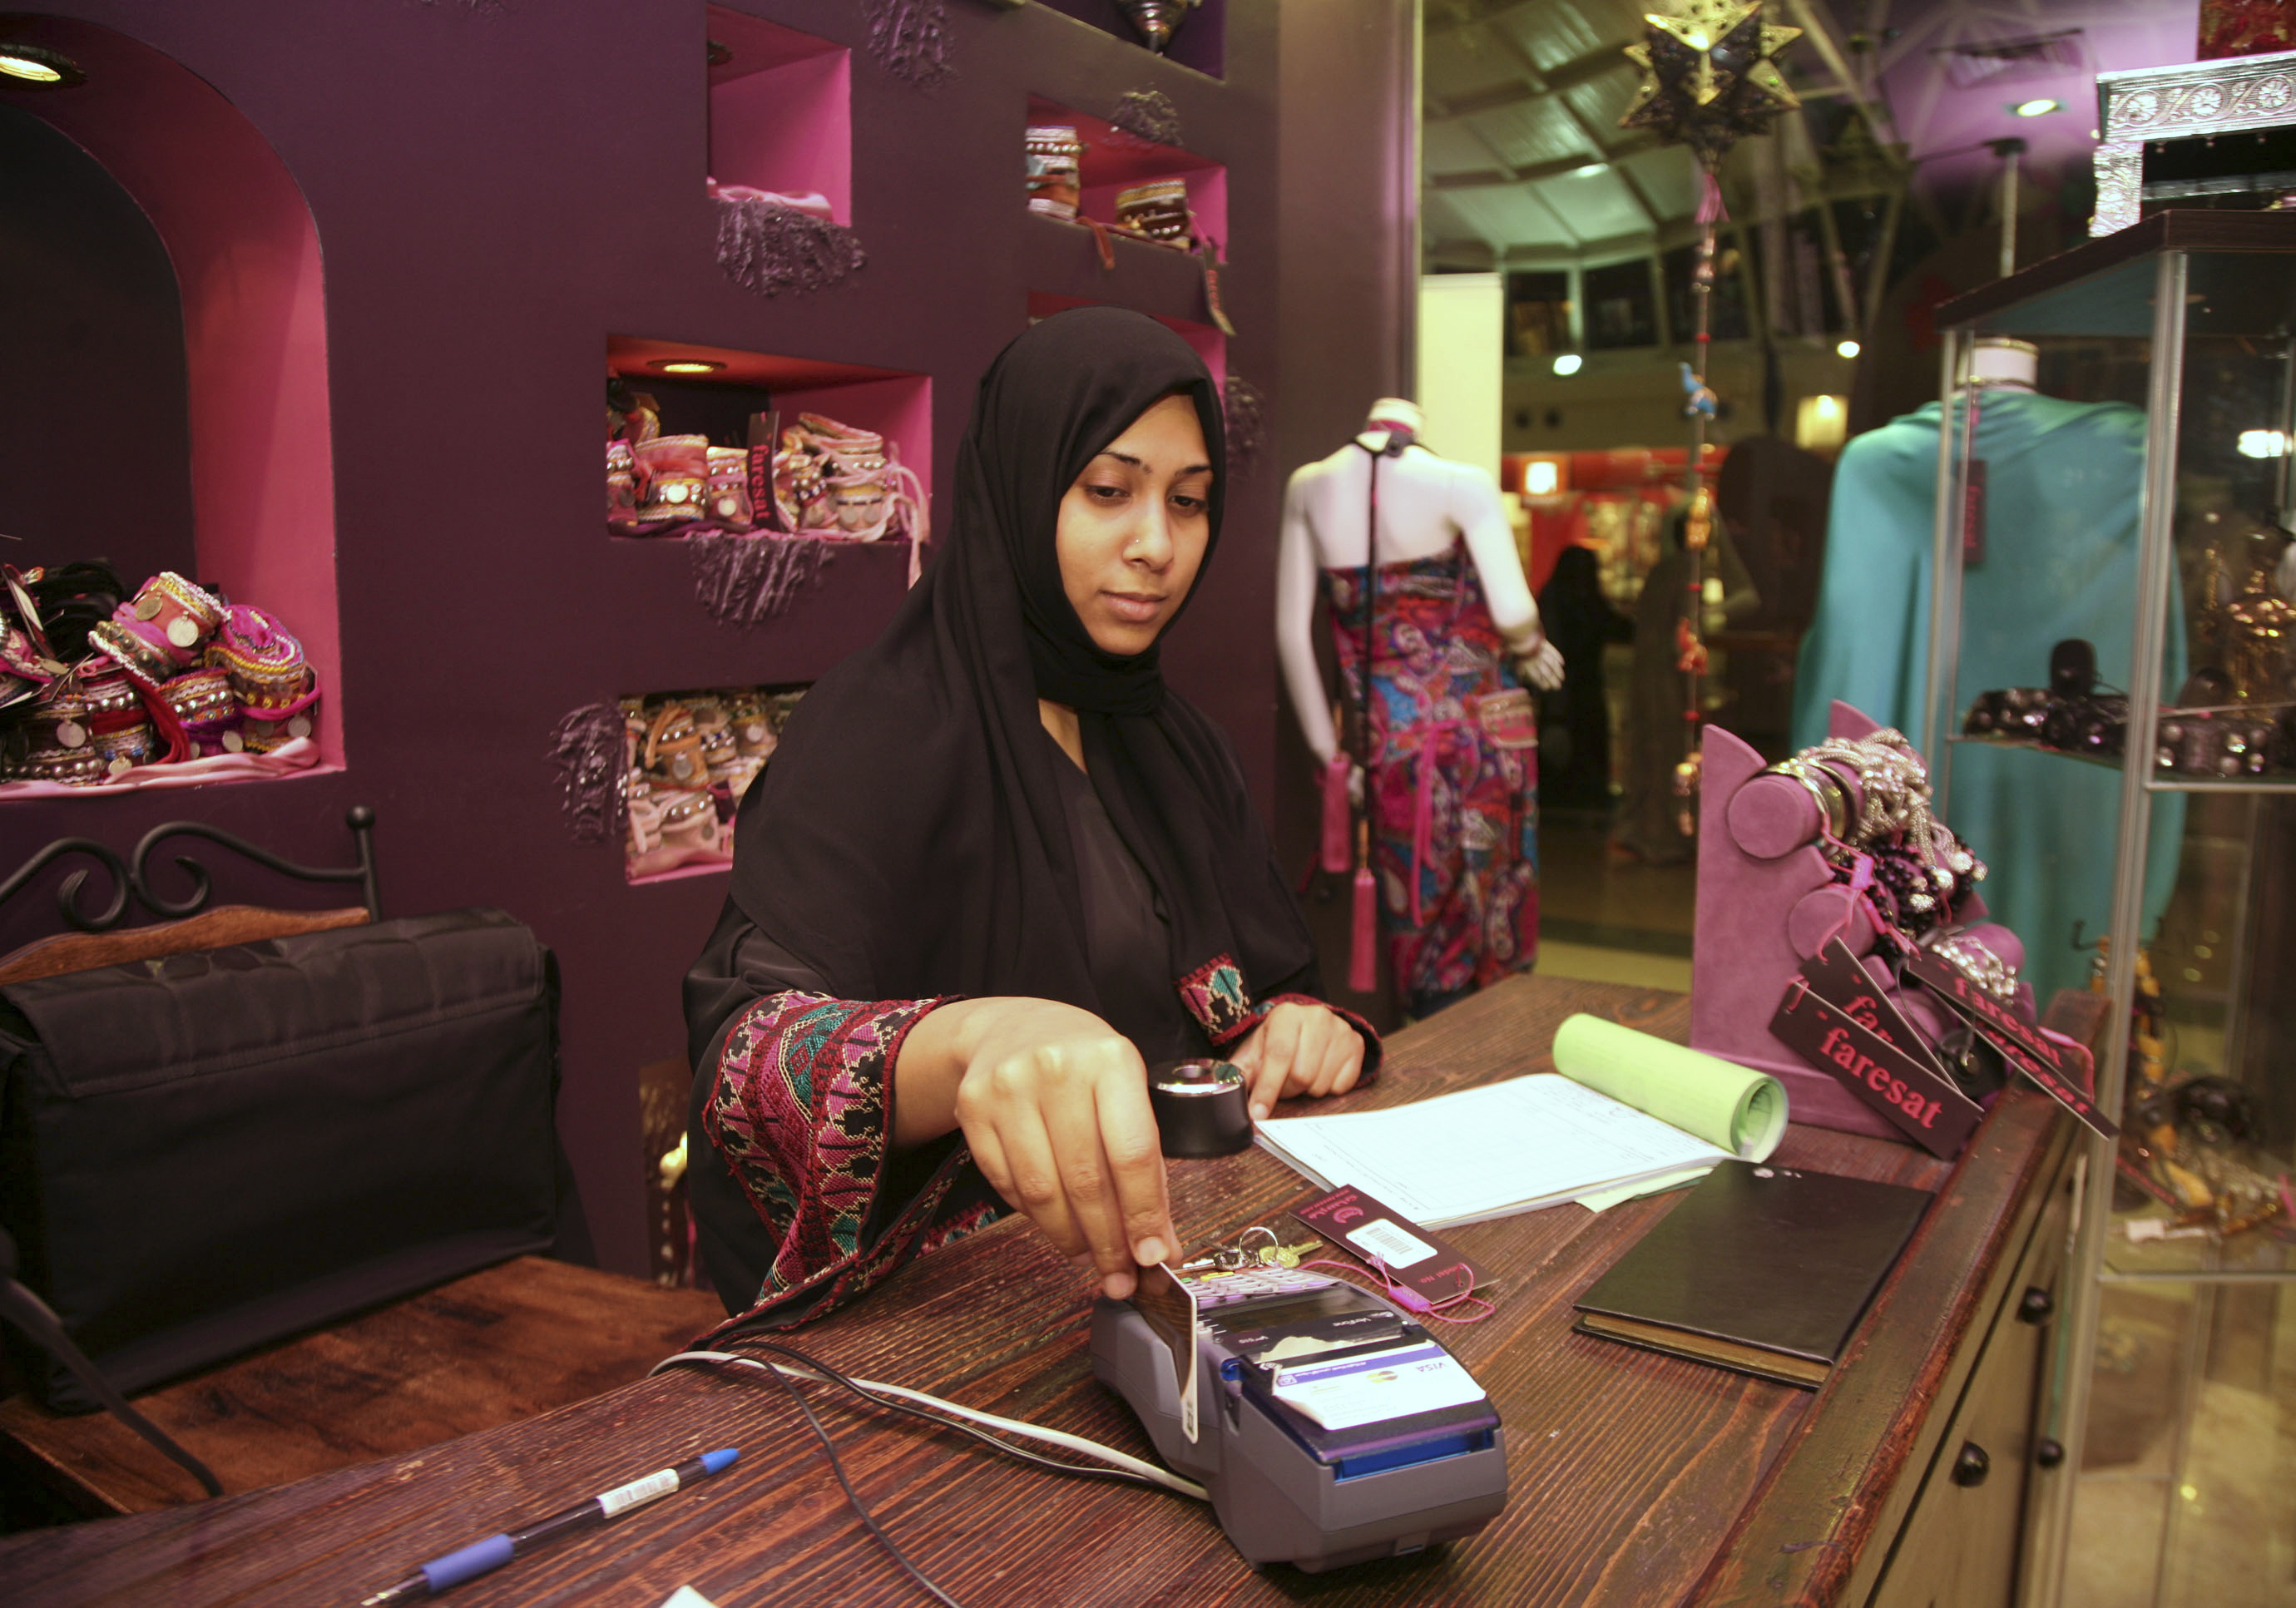 A Saudi saleswoman works in a boutique at a mall in Jeddah January 9, 2012. In a country where women are banned from driving and need the permission of a close male relative to work, travel and even have certain kinds of surgery, female employment is another battleground between traditionalists and those who want change. Women account for only 7 percent of Saudis employed by private companies but make up almost half of all Saudis listed as looking for work, according to 2009 government figures. Picture taken January 9, 2012.